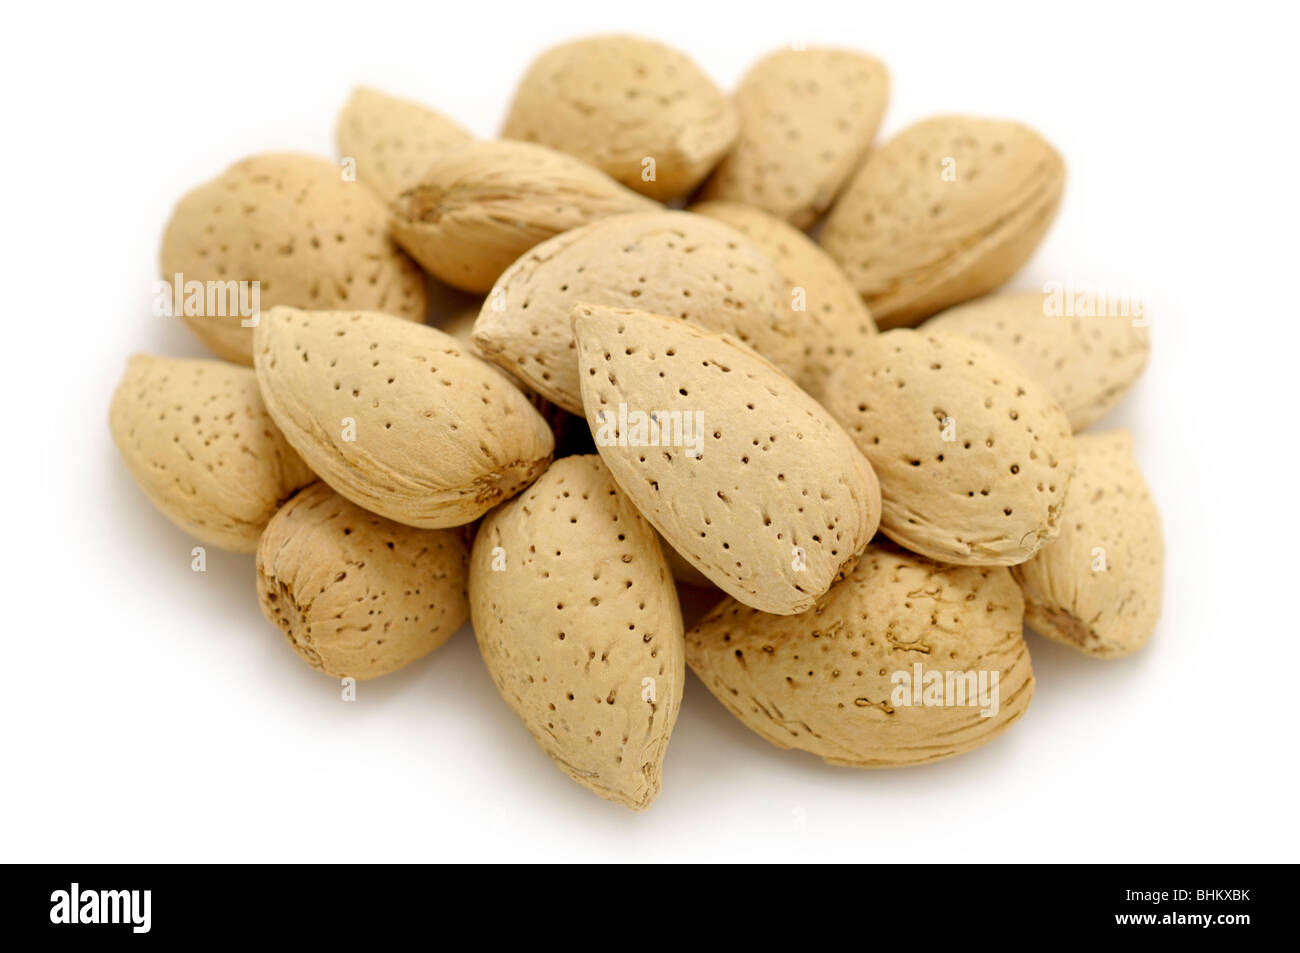 Almonds - Stock Image